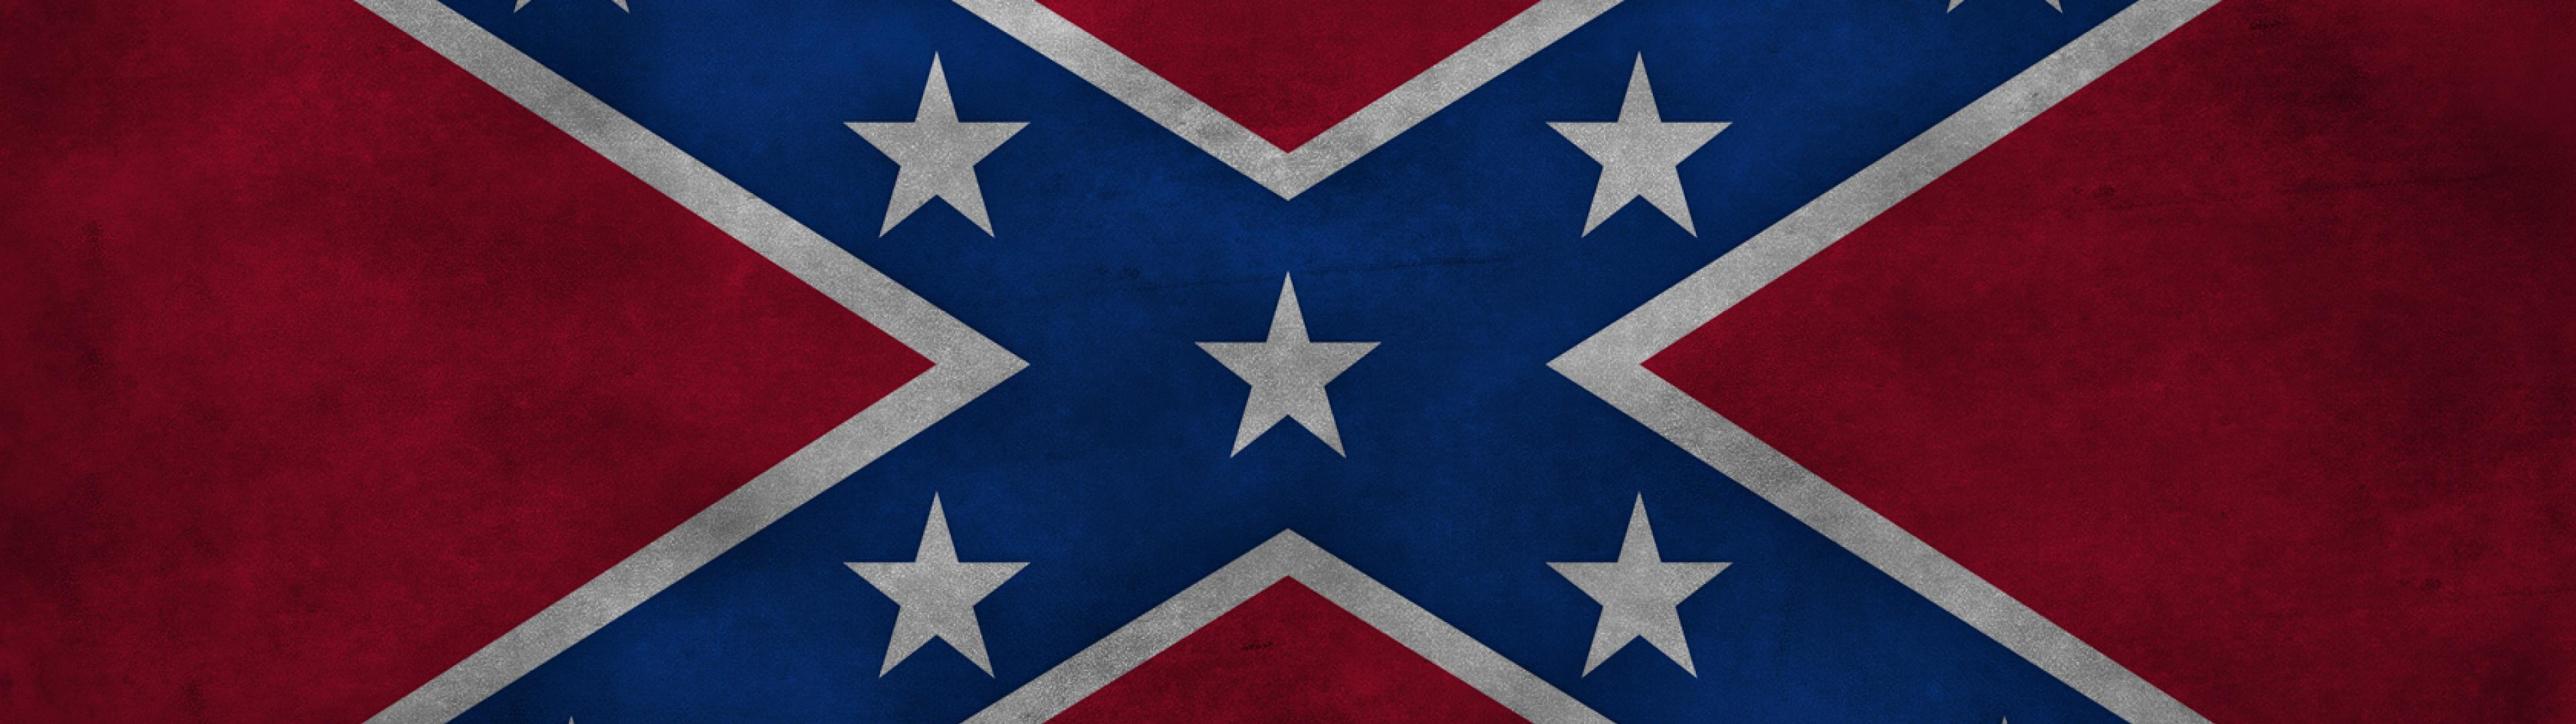 grunge flags confederate flag HD Wallpaper   General 249234 3840x1080